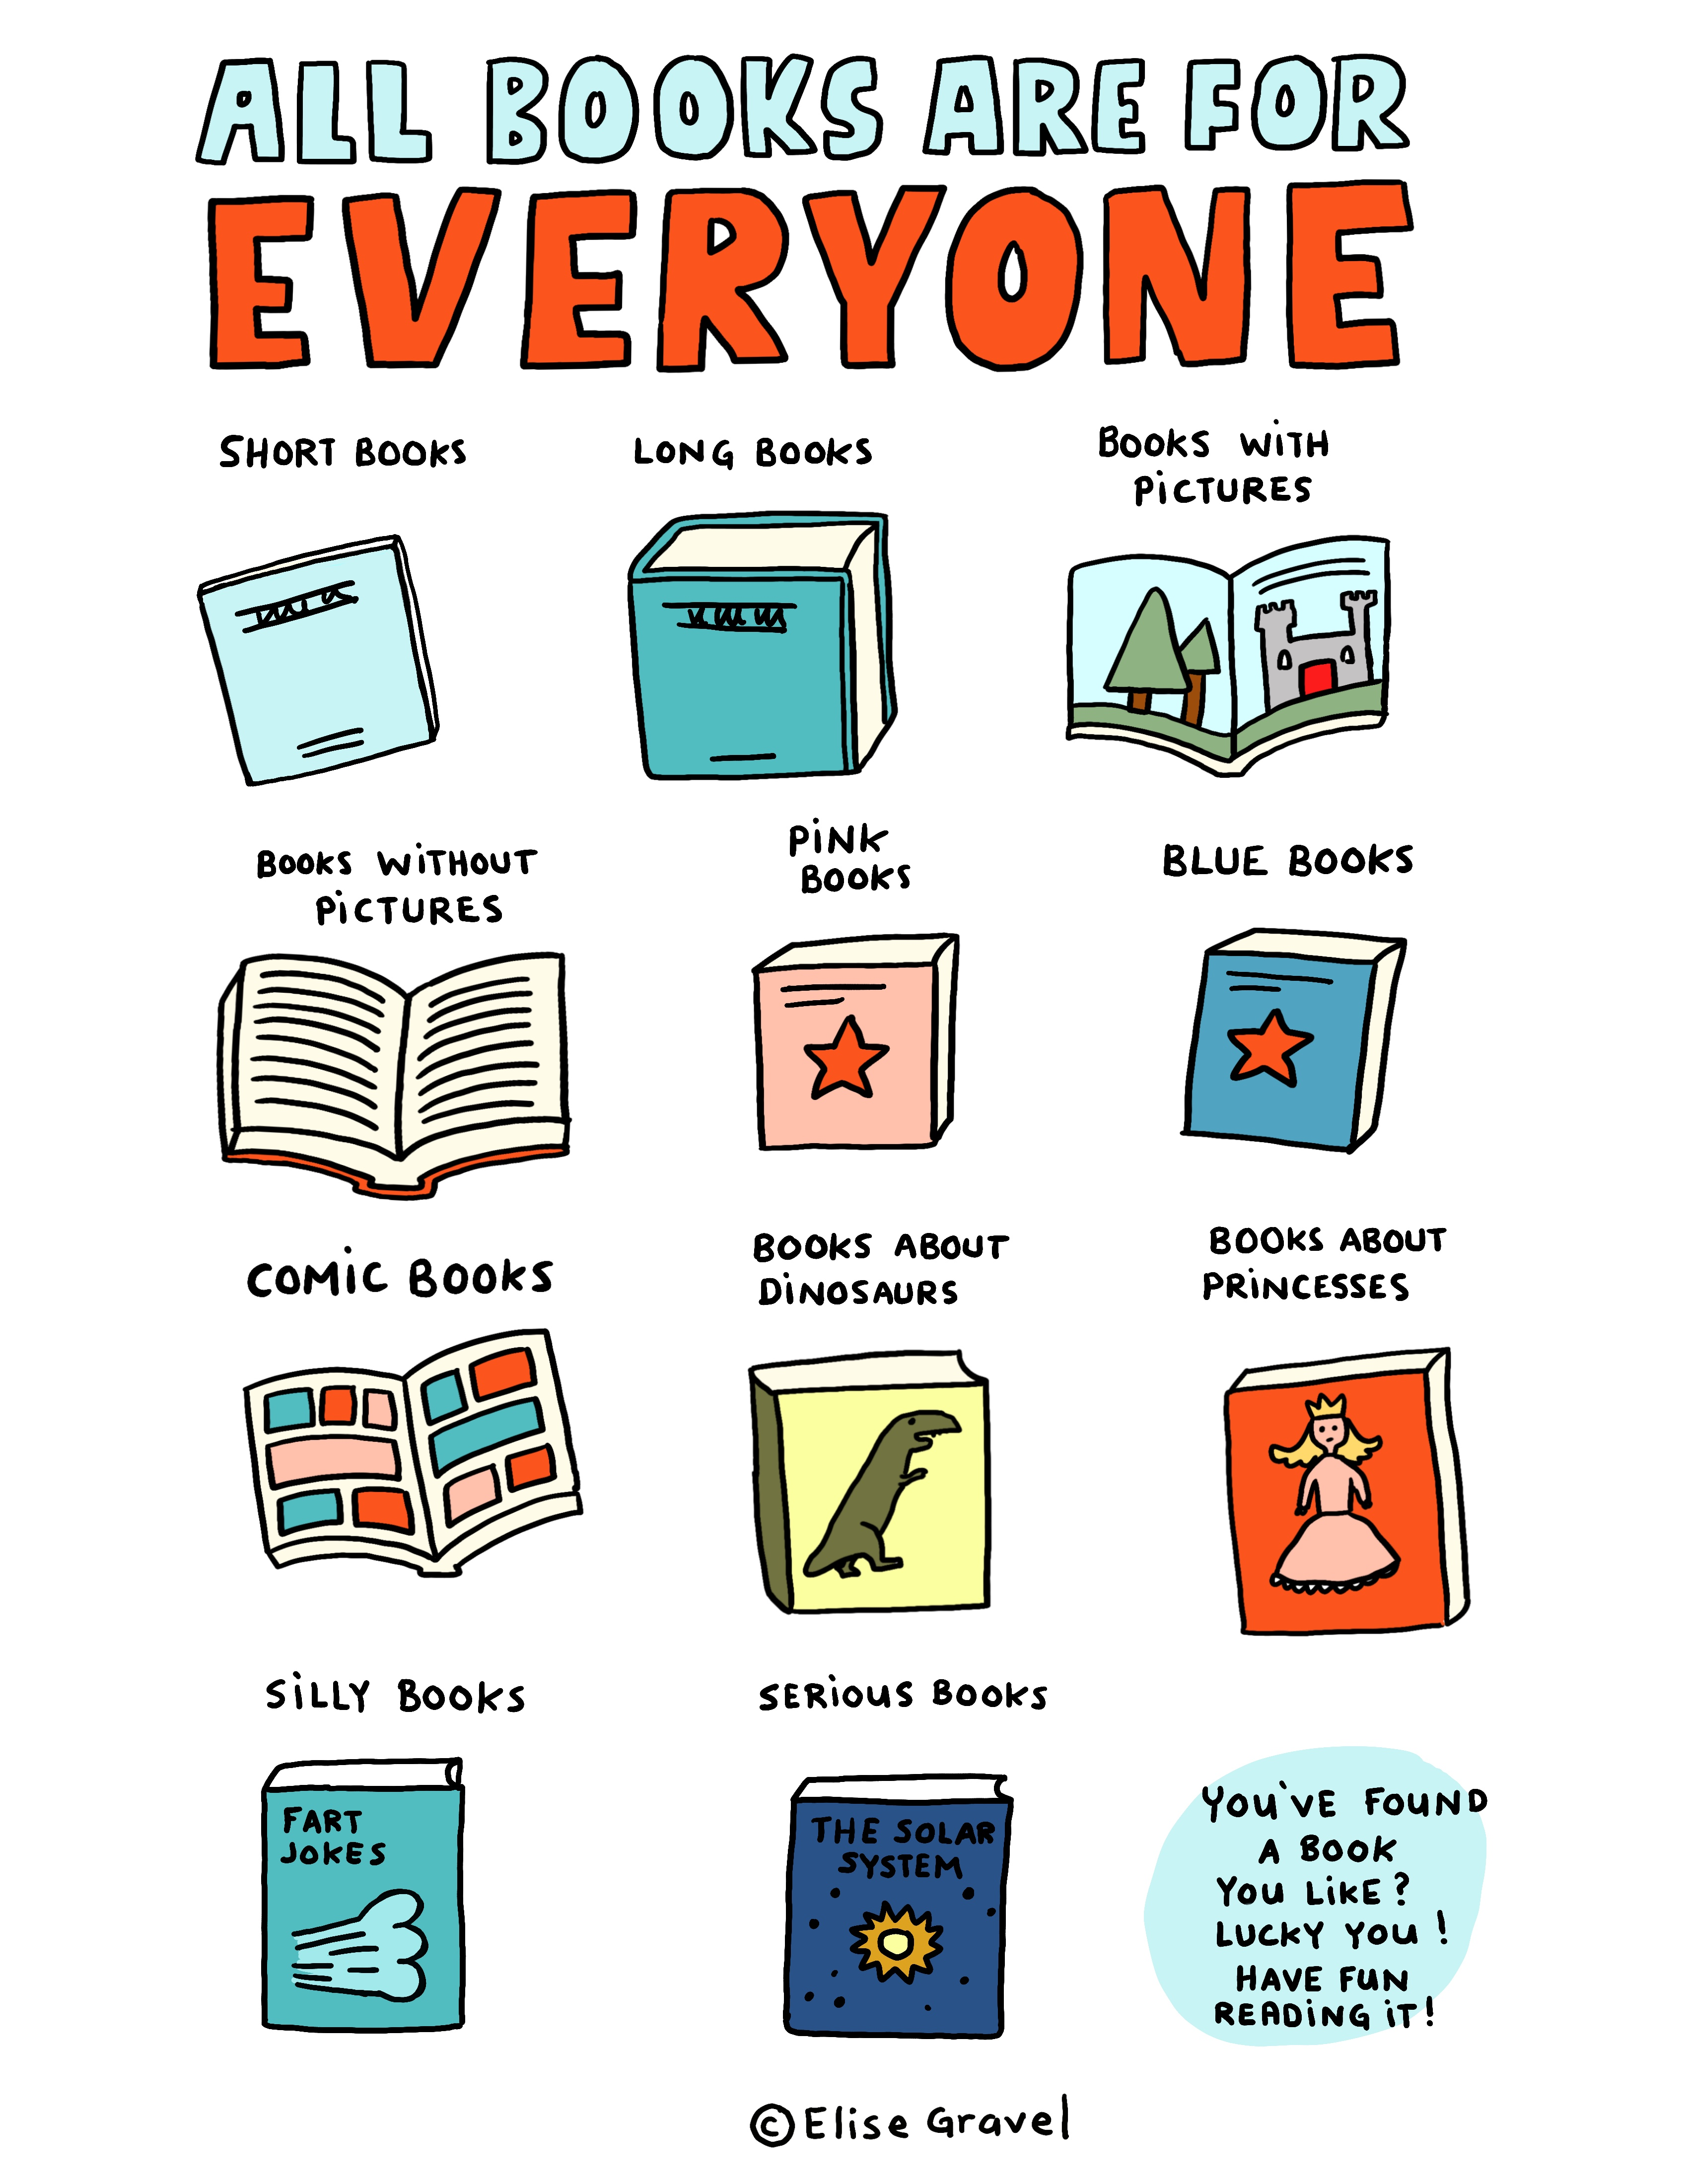 All books are for everyone